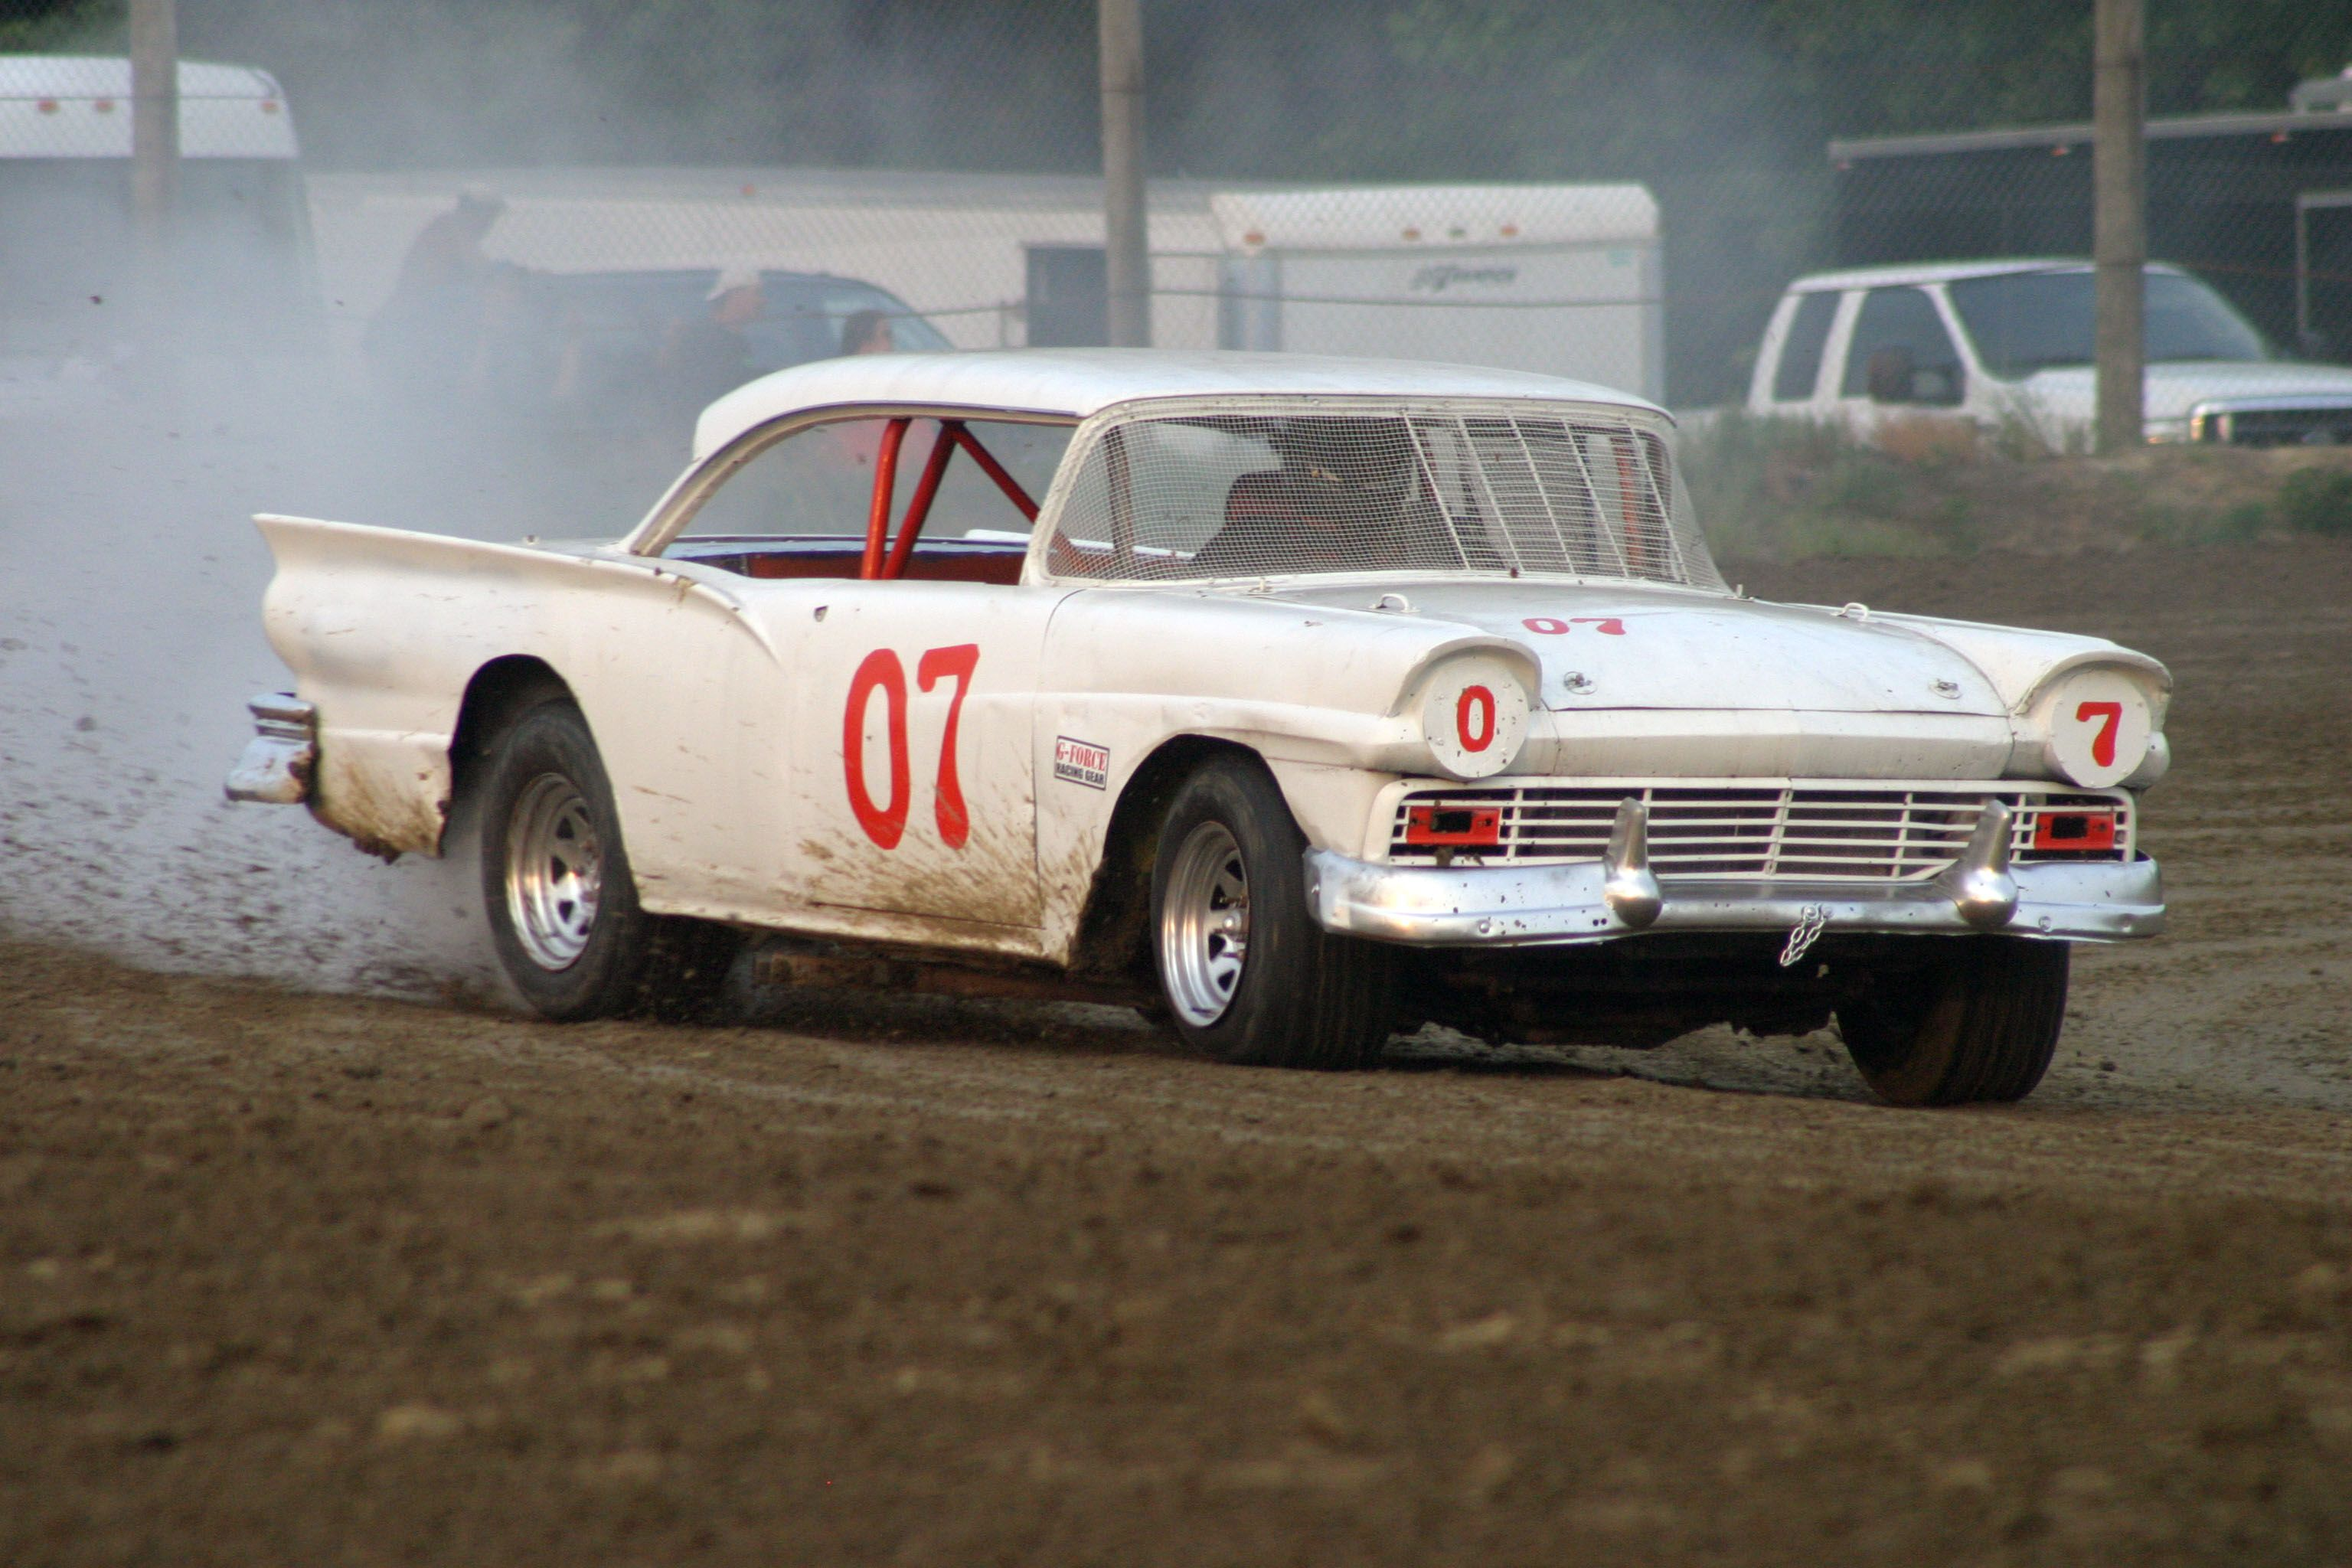 57 ford stocker classic racing cars ford racing